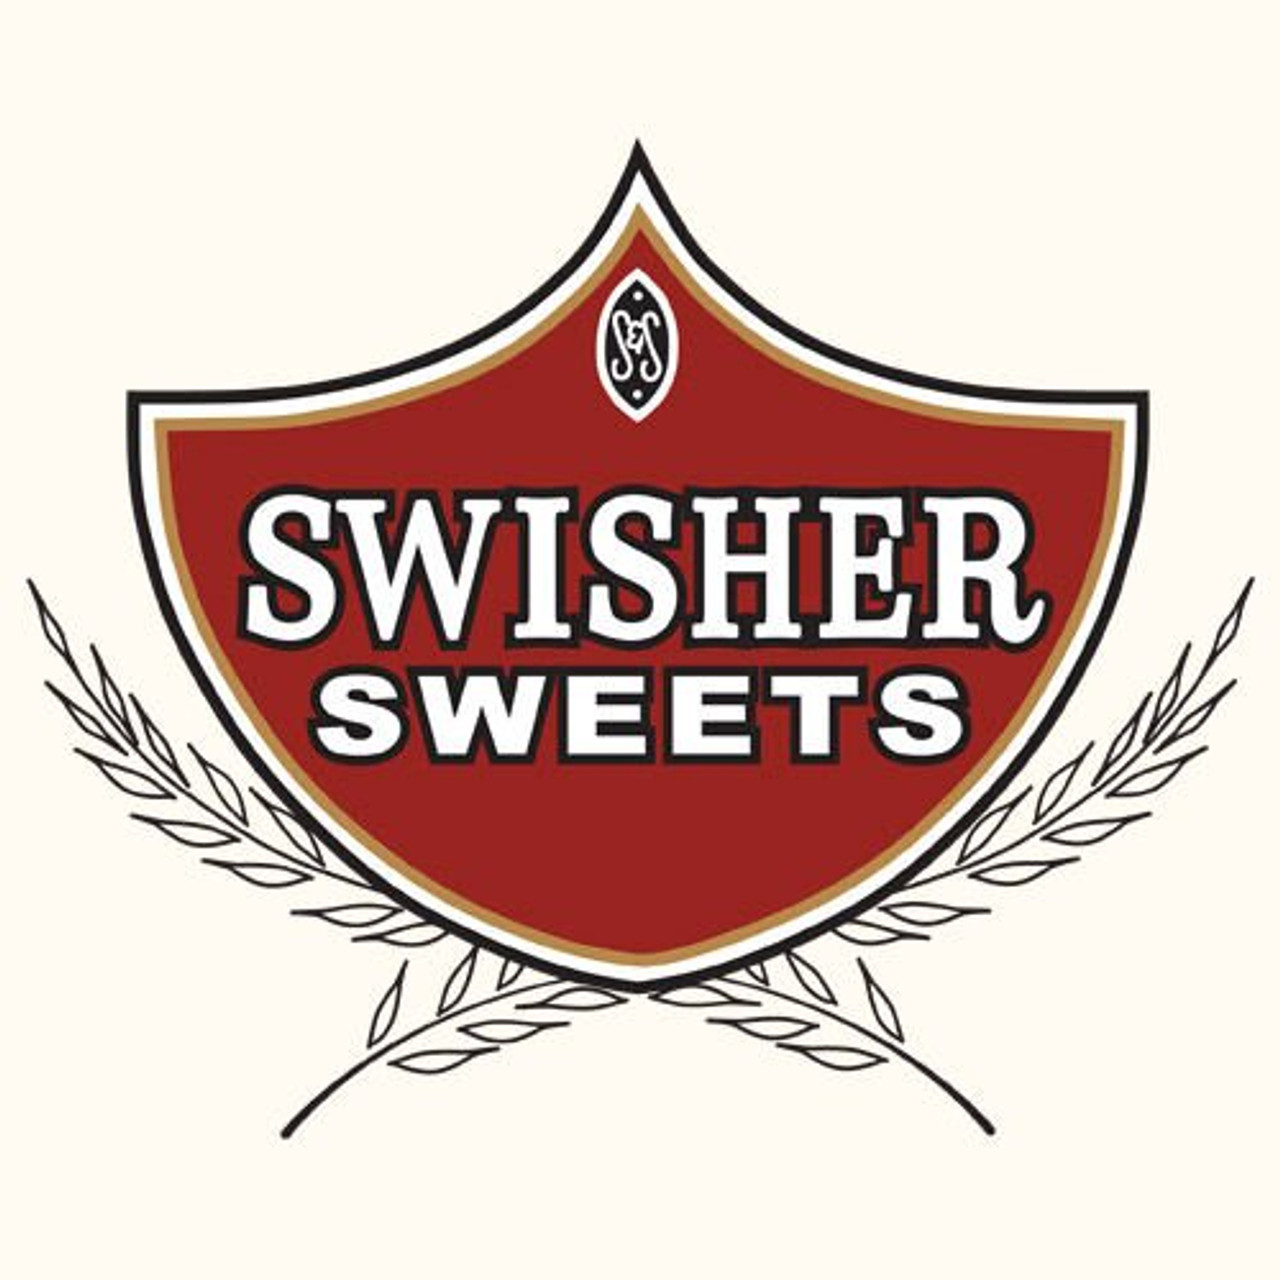 Swisher Sweets Little Cigars Cherry - 3.75 x 24 (5 Packs of 40 (200 Total))